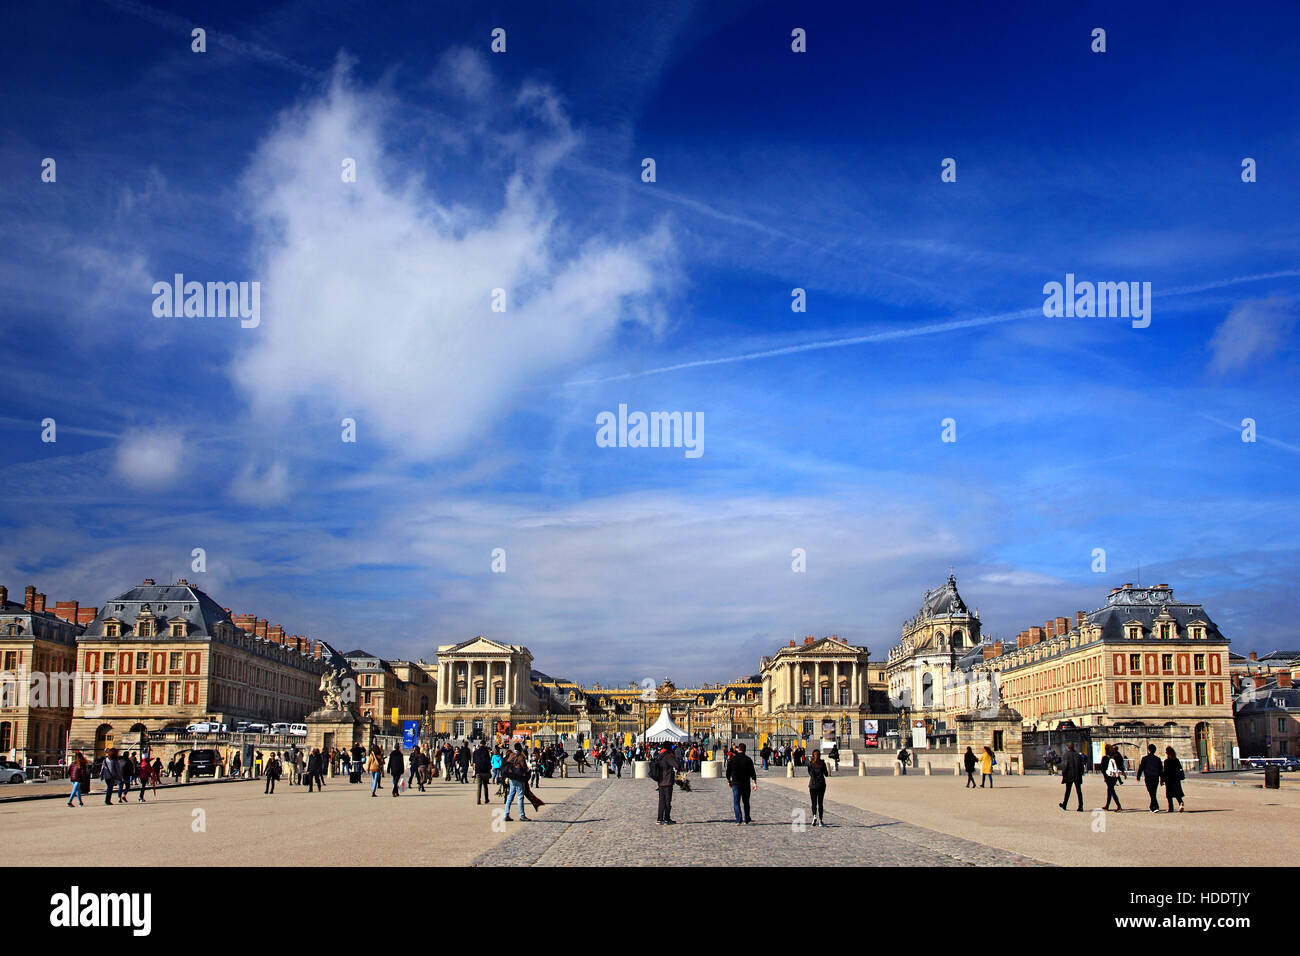 Tourists outside the Palace of Versailles, France. - Stock Image